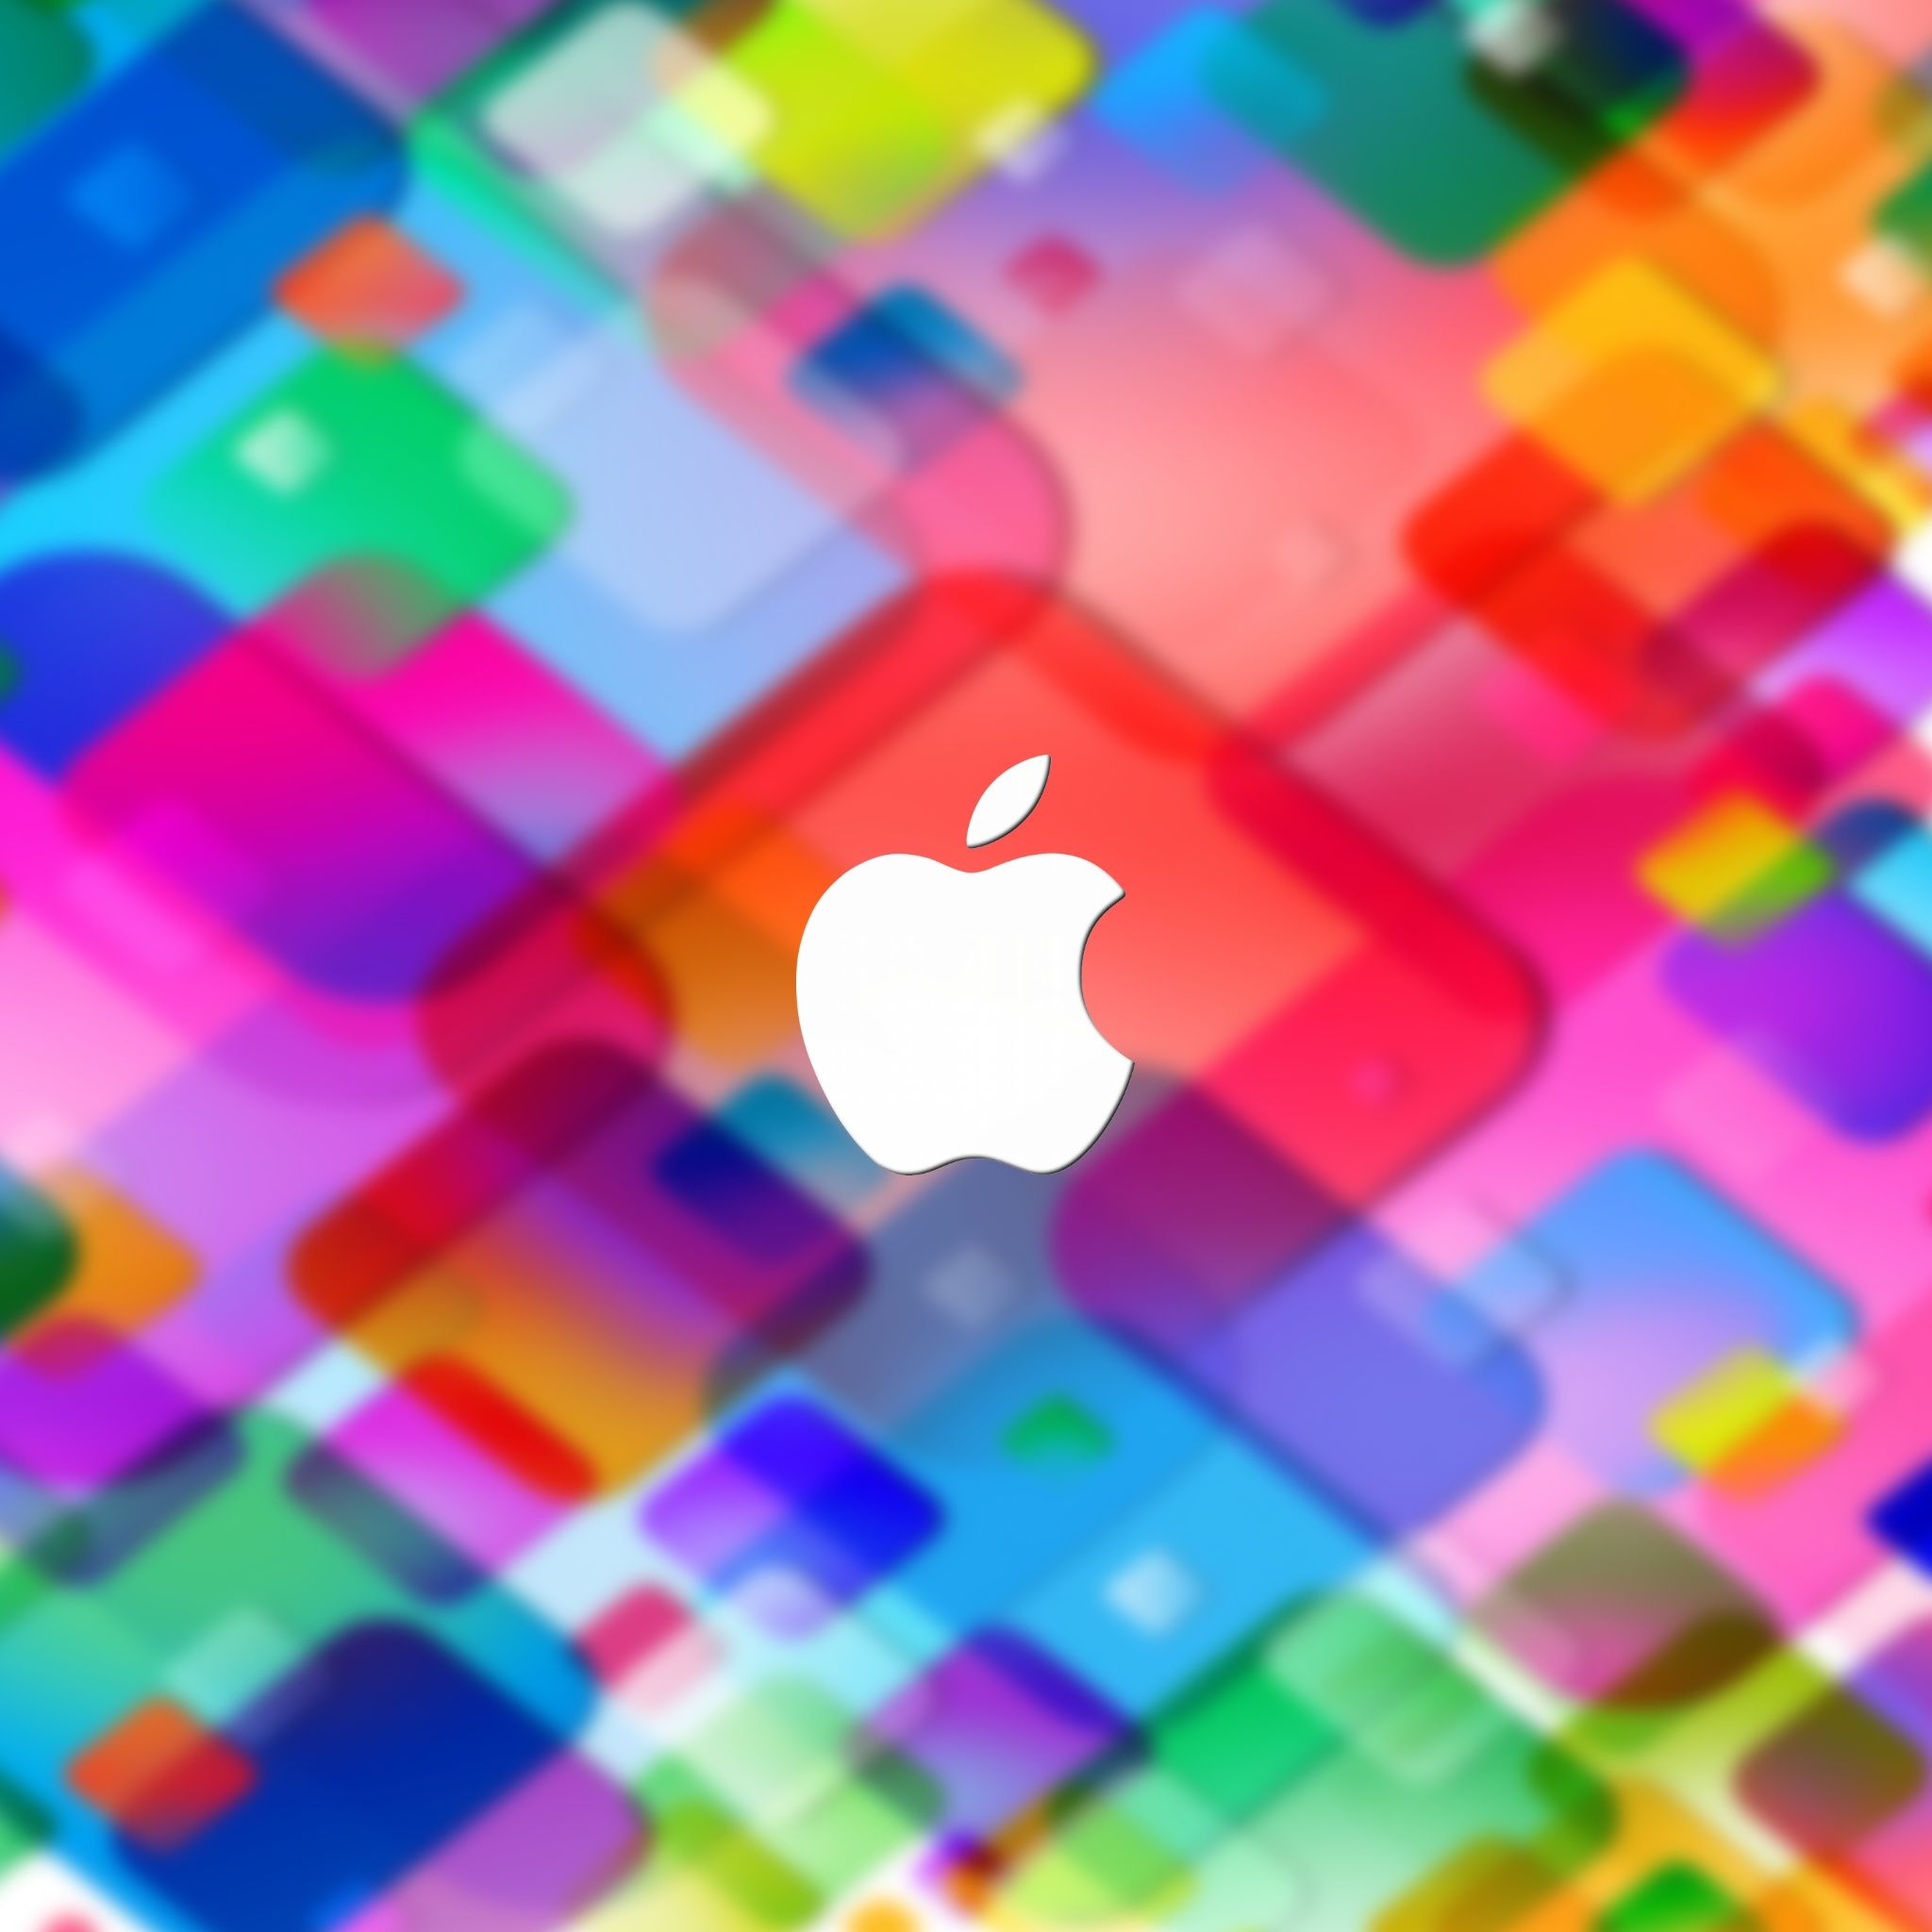 Apple Logo Blurred Colorful Squares iPad Wallpaper HD | Apple iPad ...